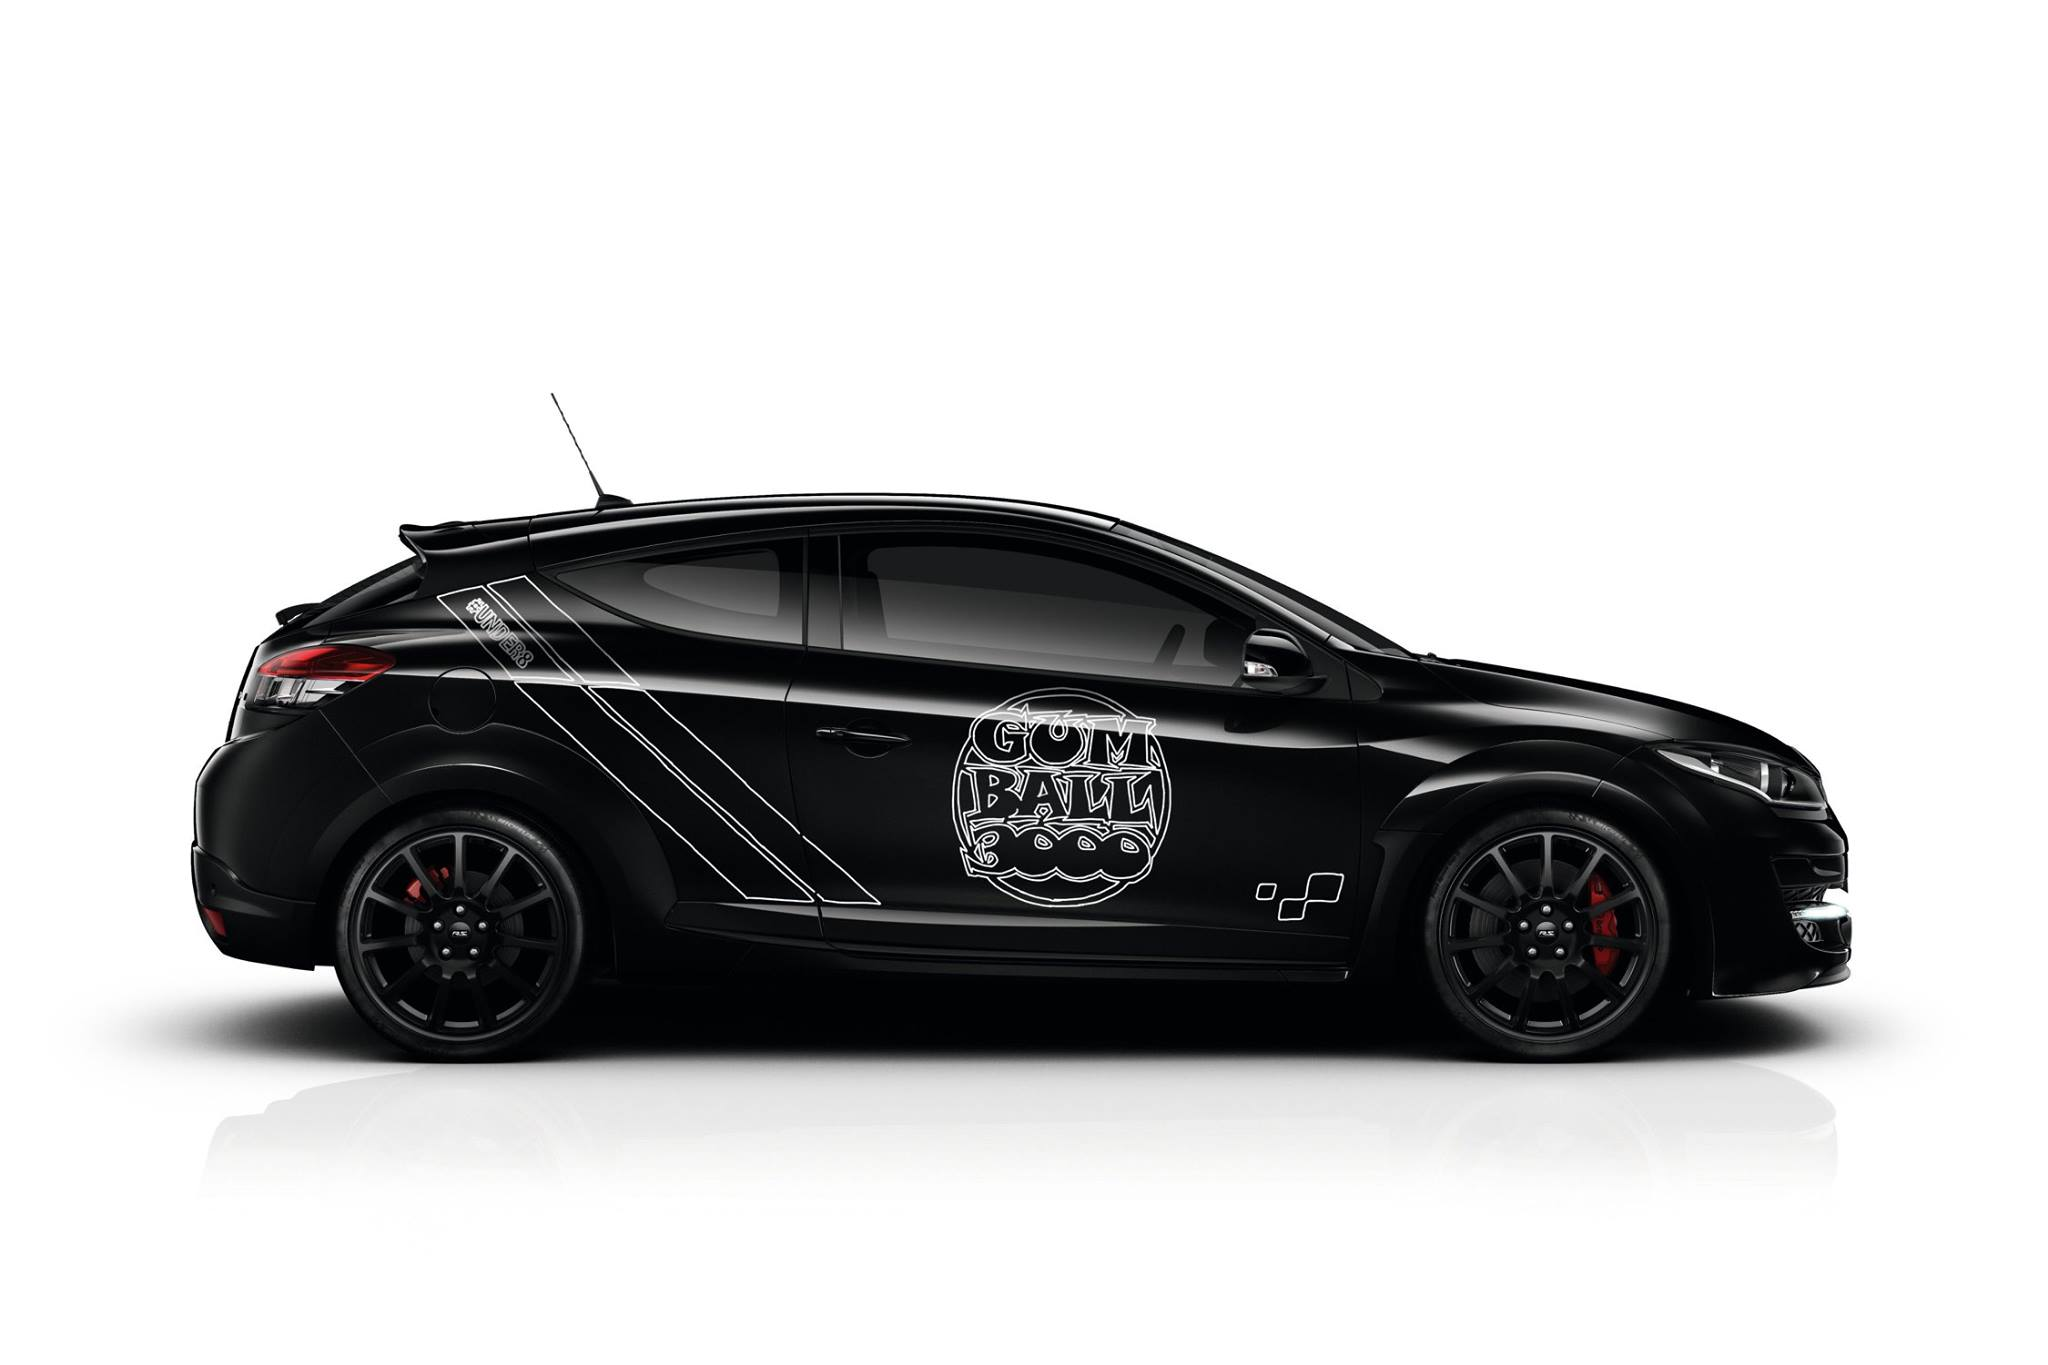 2018 Renault Megane RS 275 Trophy photo - 2